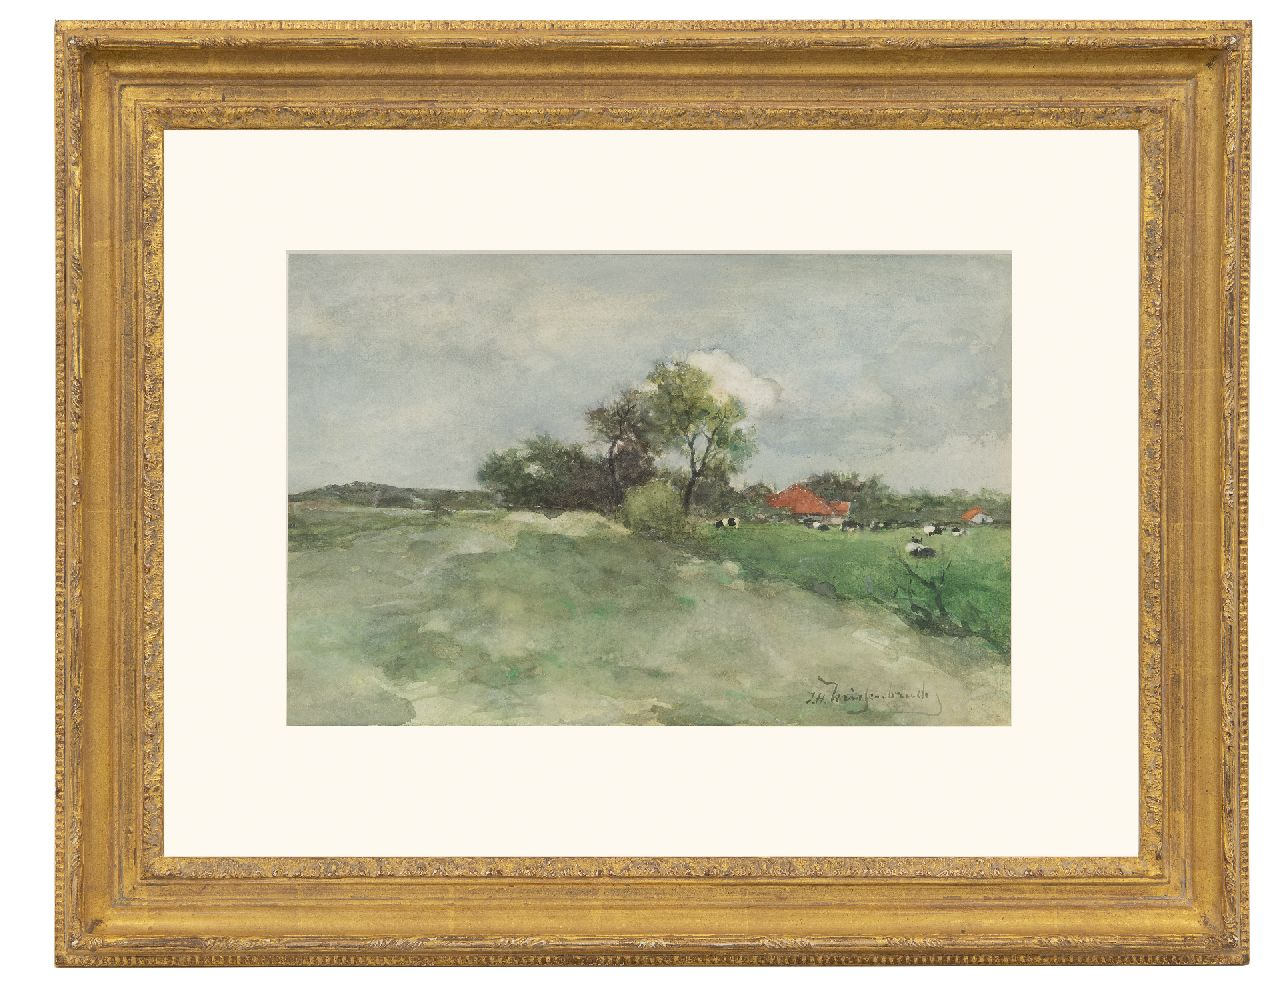 Weissenbruch H.J.  | Hendrik Johannes 'J.H.' Weissenbruch | Watercolours and drawings offered for sale | Meadow behind the dunes, watercolour on paper 23.5 x 36.3 cm, signed l.r. and ca 1879